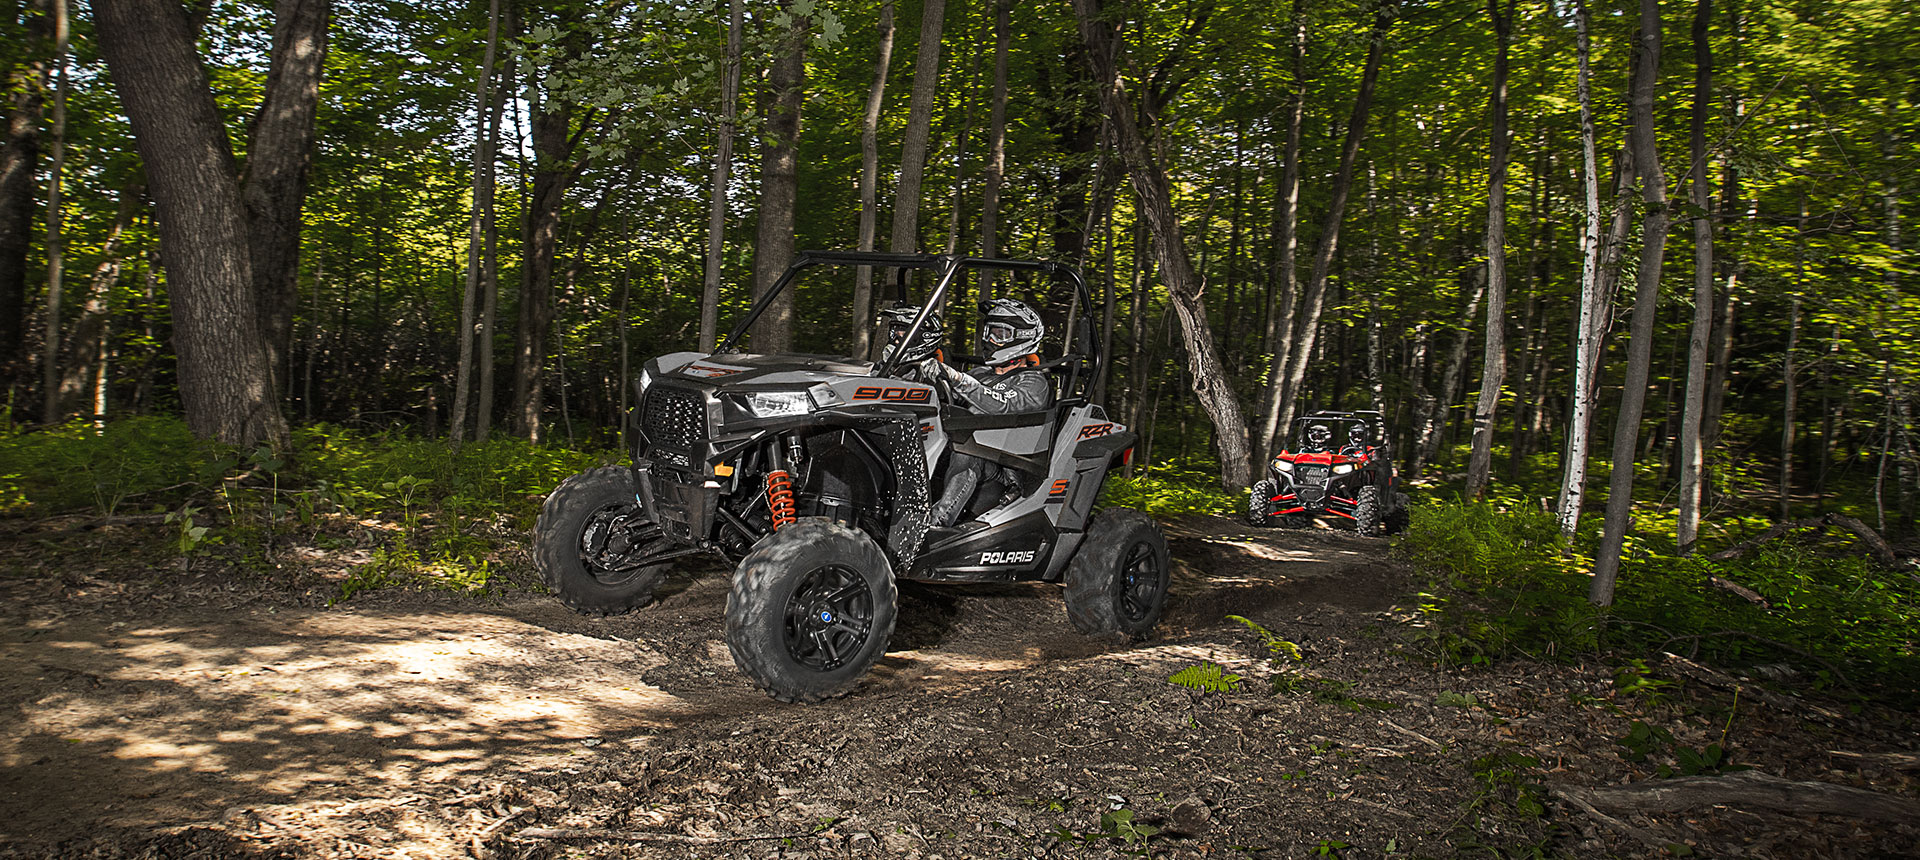 2019 Polaris RZR S 900 in Berne, Indiana - Photo 8